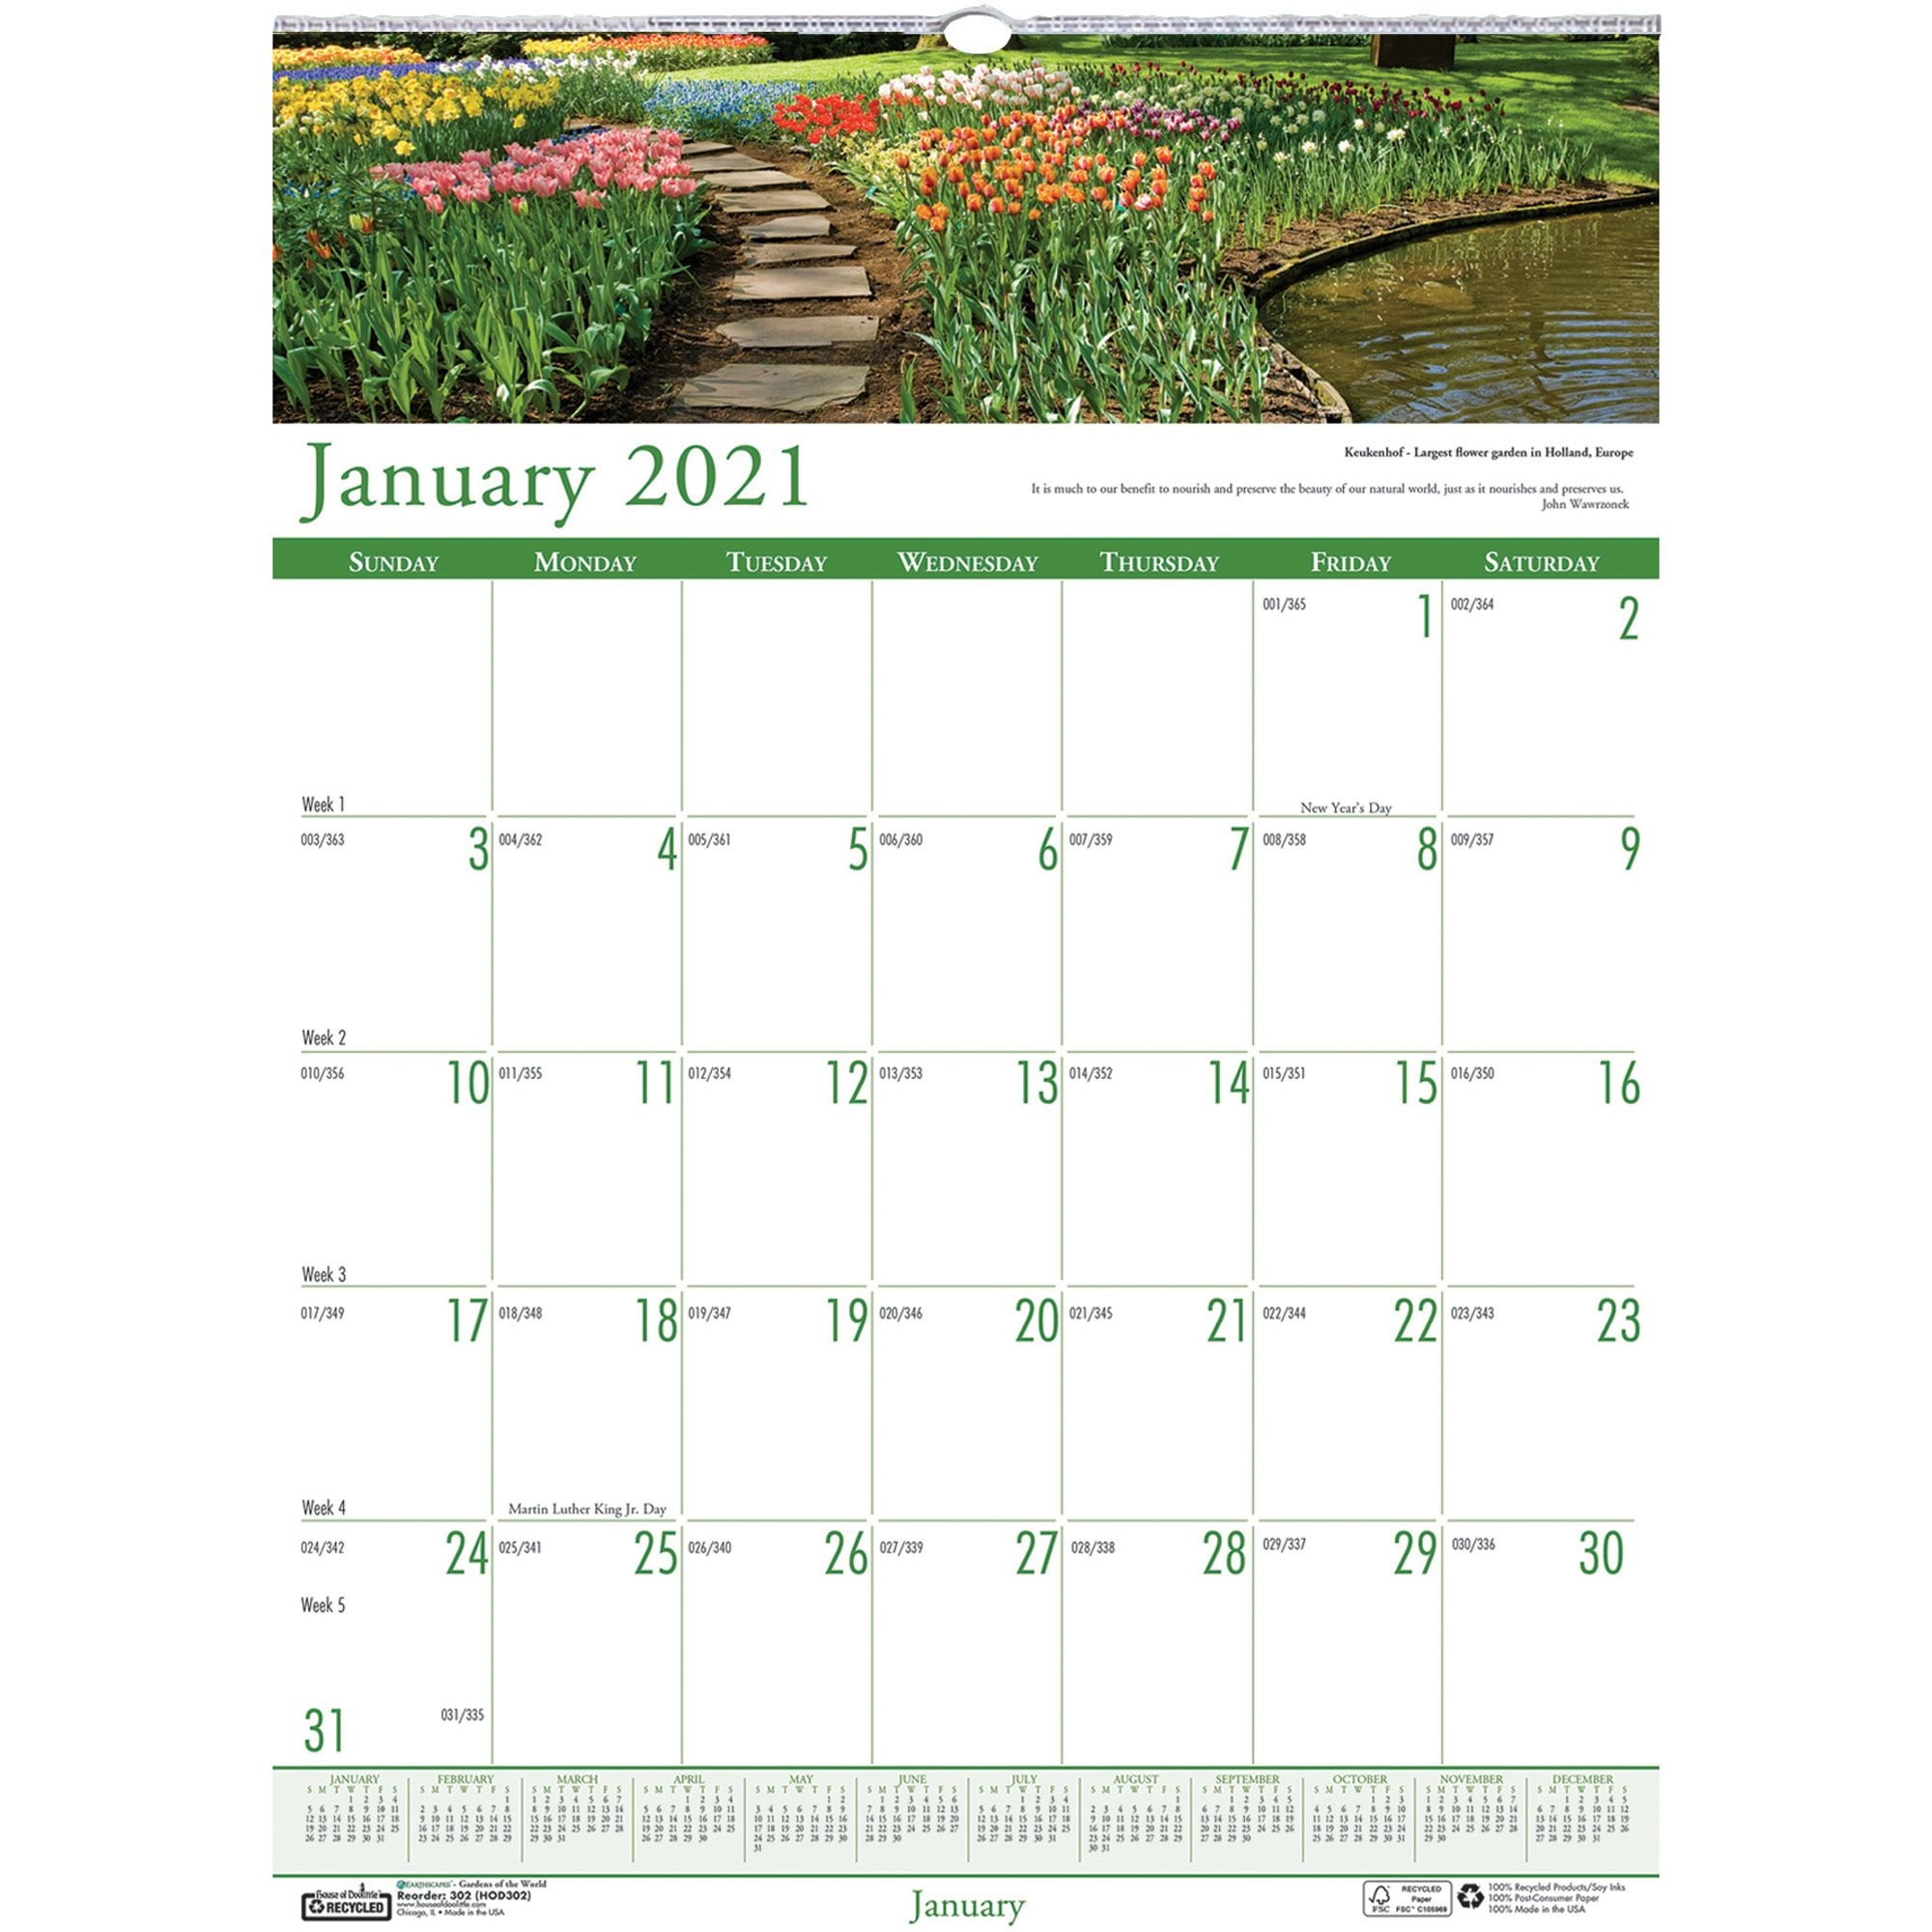 House Of Doolittle Earthscapes Gardens Wall Calendar Julian Dates Monthly 1 Year January 2021 Till December 2021 1 Month Single Page Layout